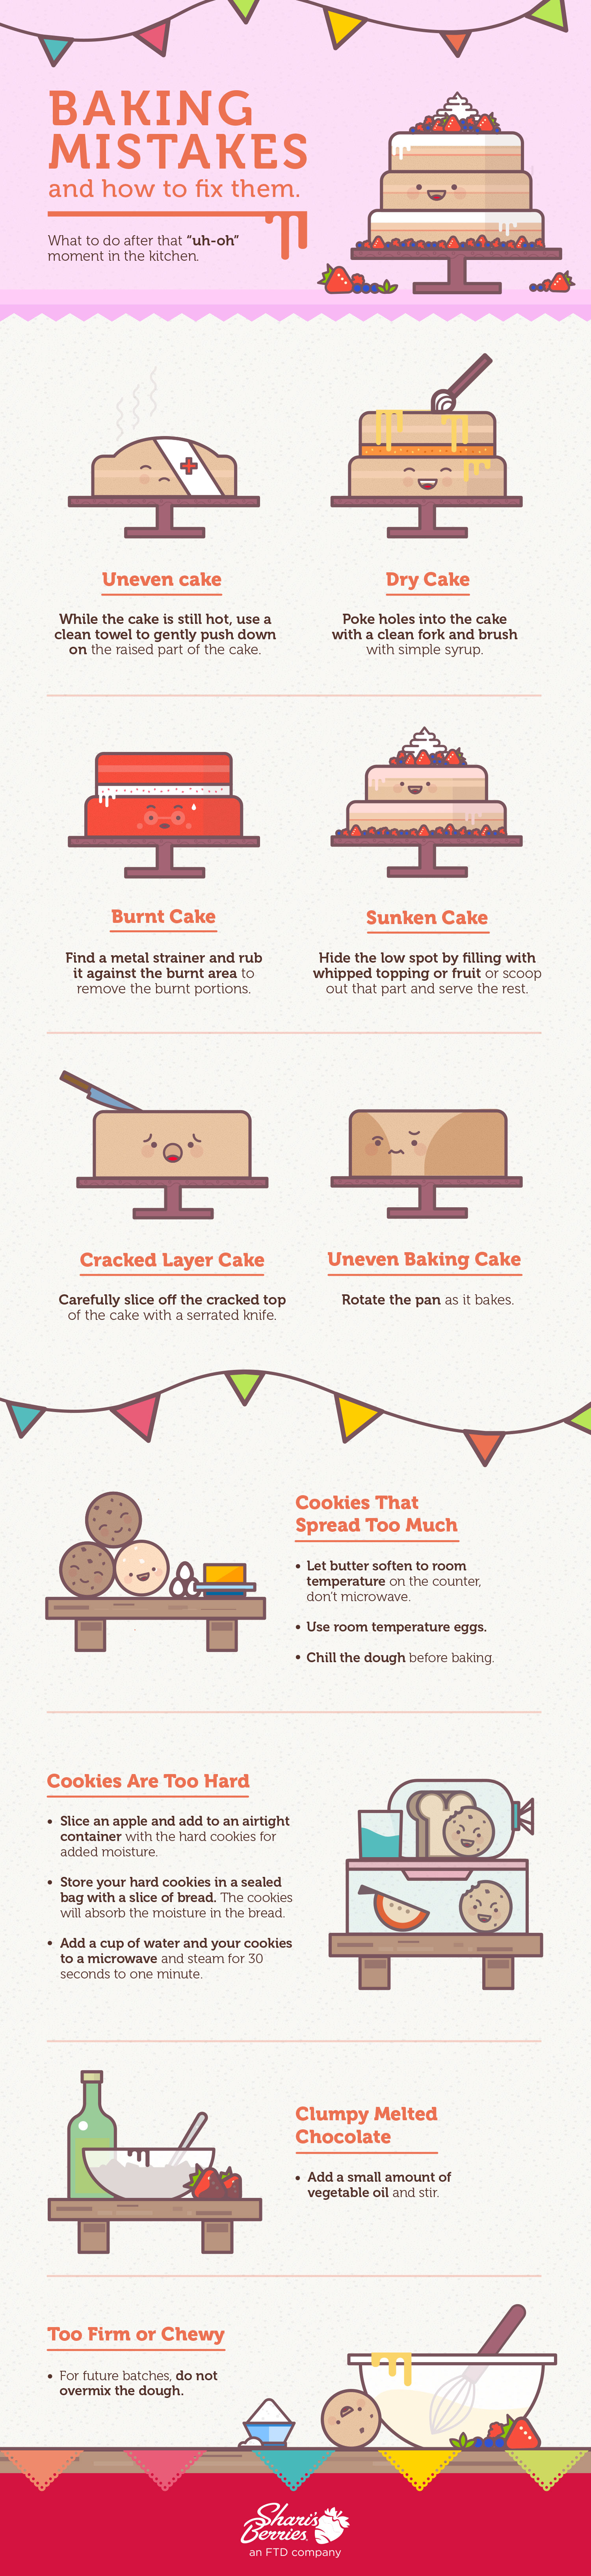 Baking mistakes and fixes.jpg